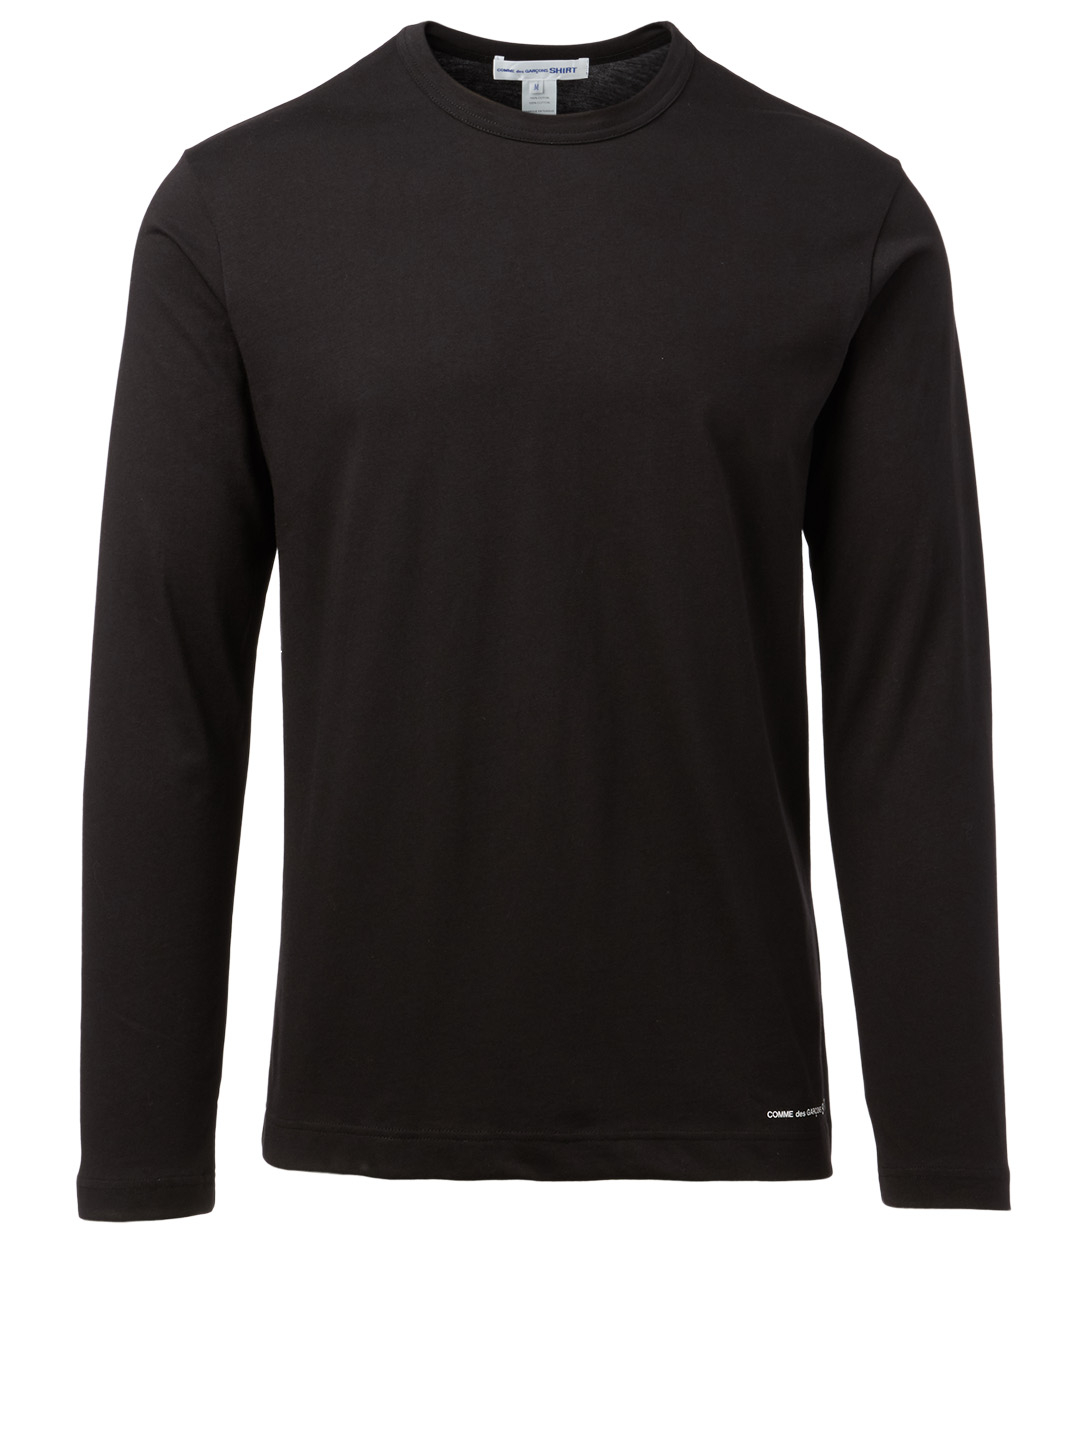 COMME DES GARÇONS SHIRT Cotton Logo Long-Sleeve T-Shirt Men's Black